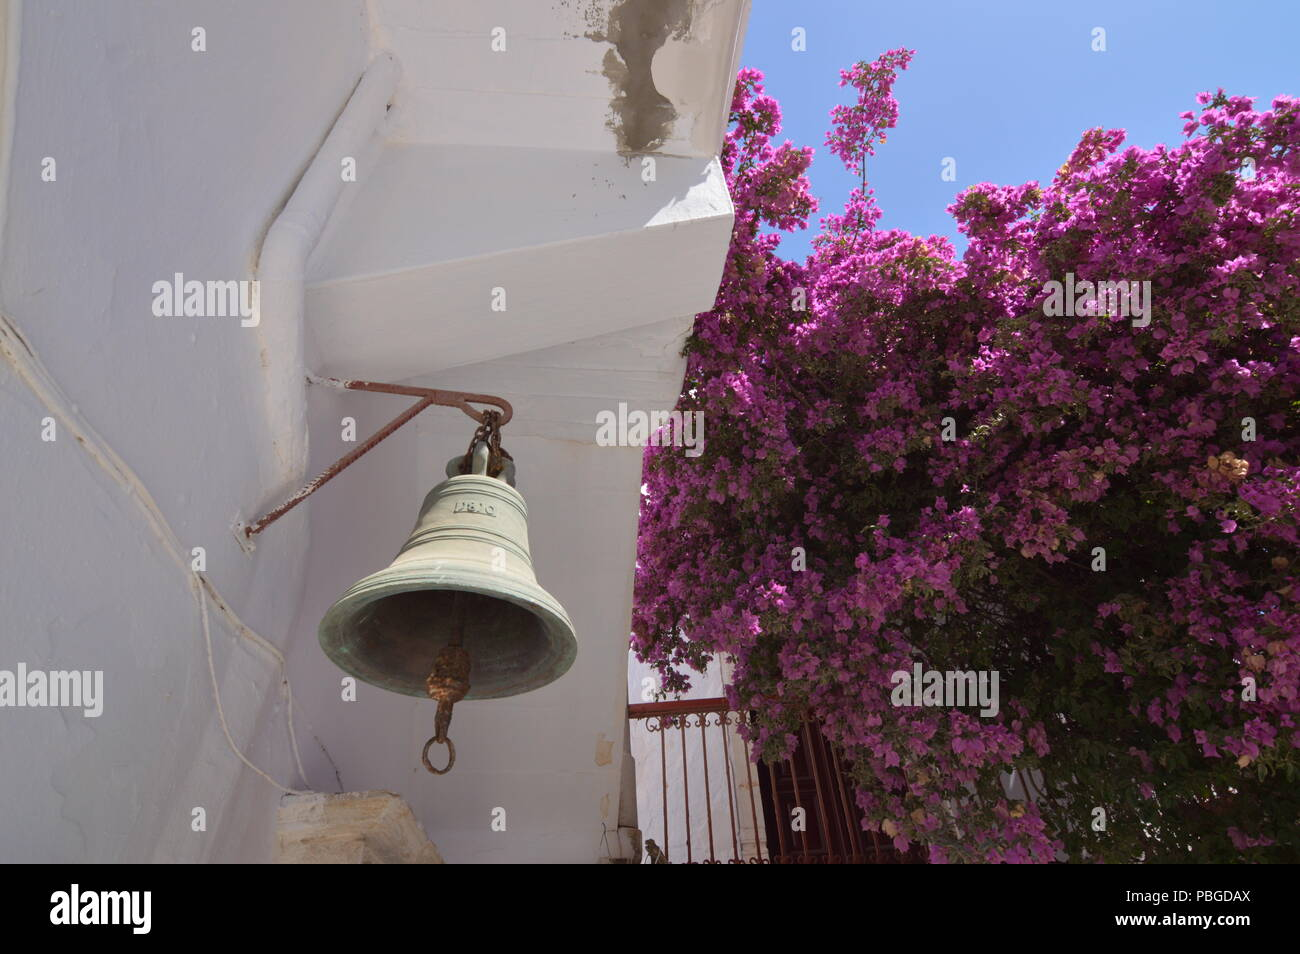 Bell Of The Panagia Tourliani Monastery In Ano Mera On The Island Of Mykonos. Architecture Landscapes Travels Cruises. July 3, 2018. Ano Mera, Island  Stock Photo